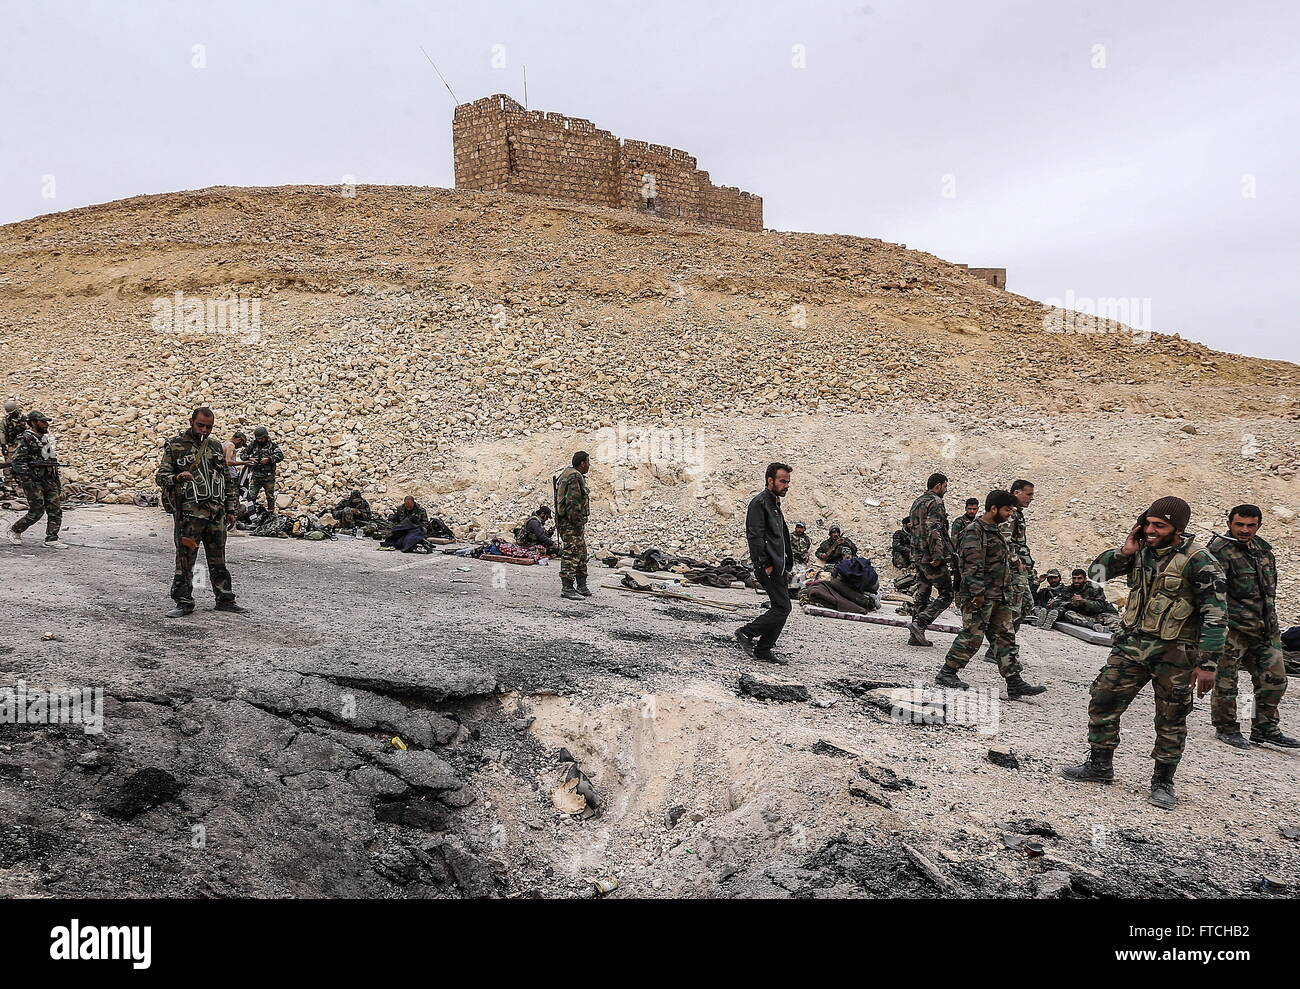 Palmyria, Syria. 26th Mar, 2016. Soldiers of the Syrian government army near Fakhr al-Din al-Maani Citadel in Palmyra, - Stock Image